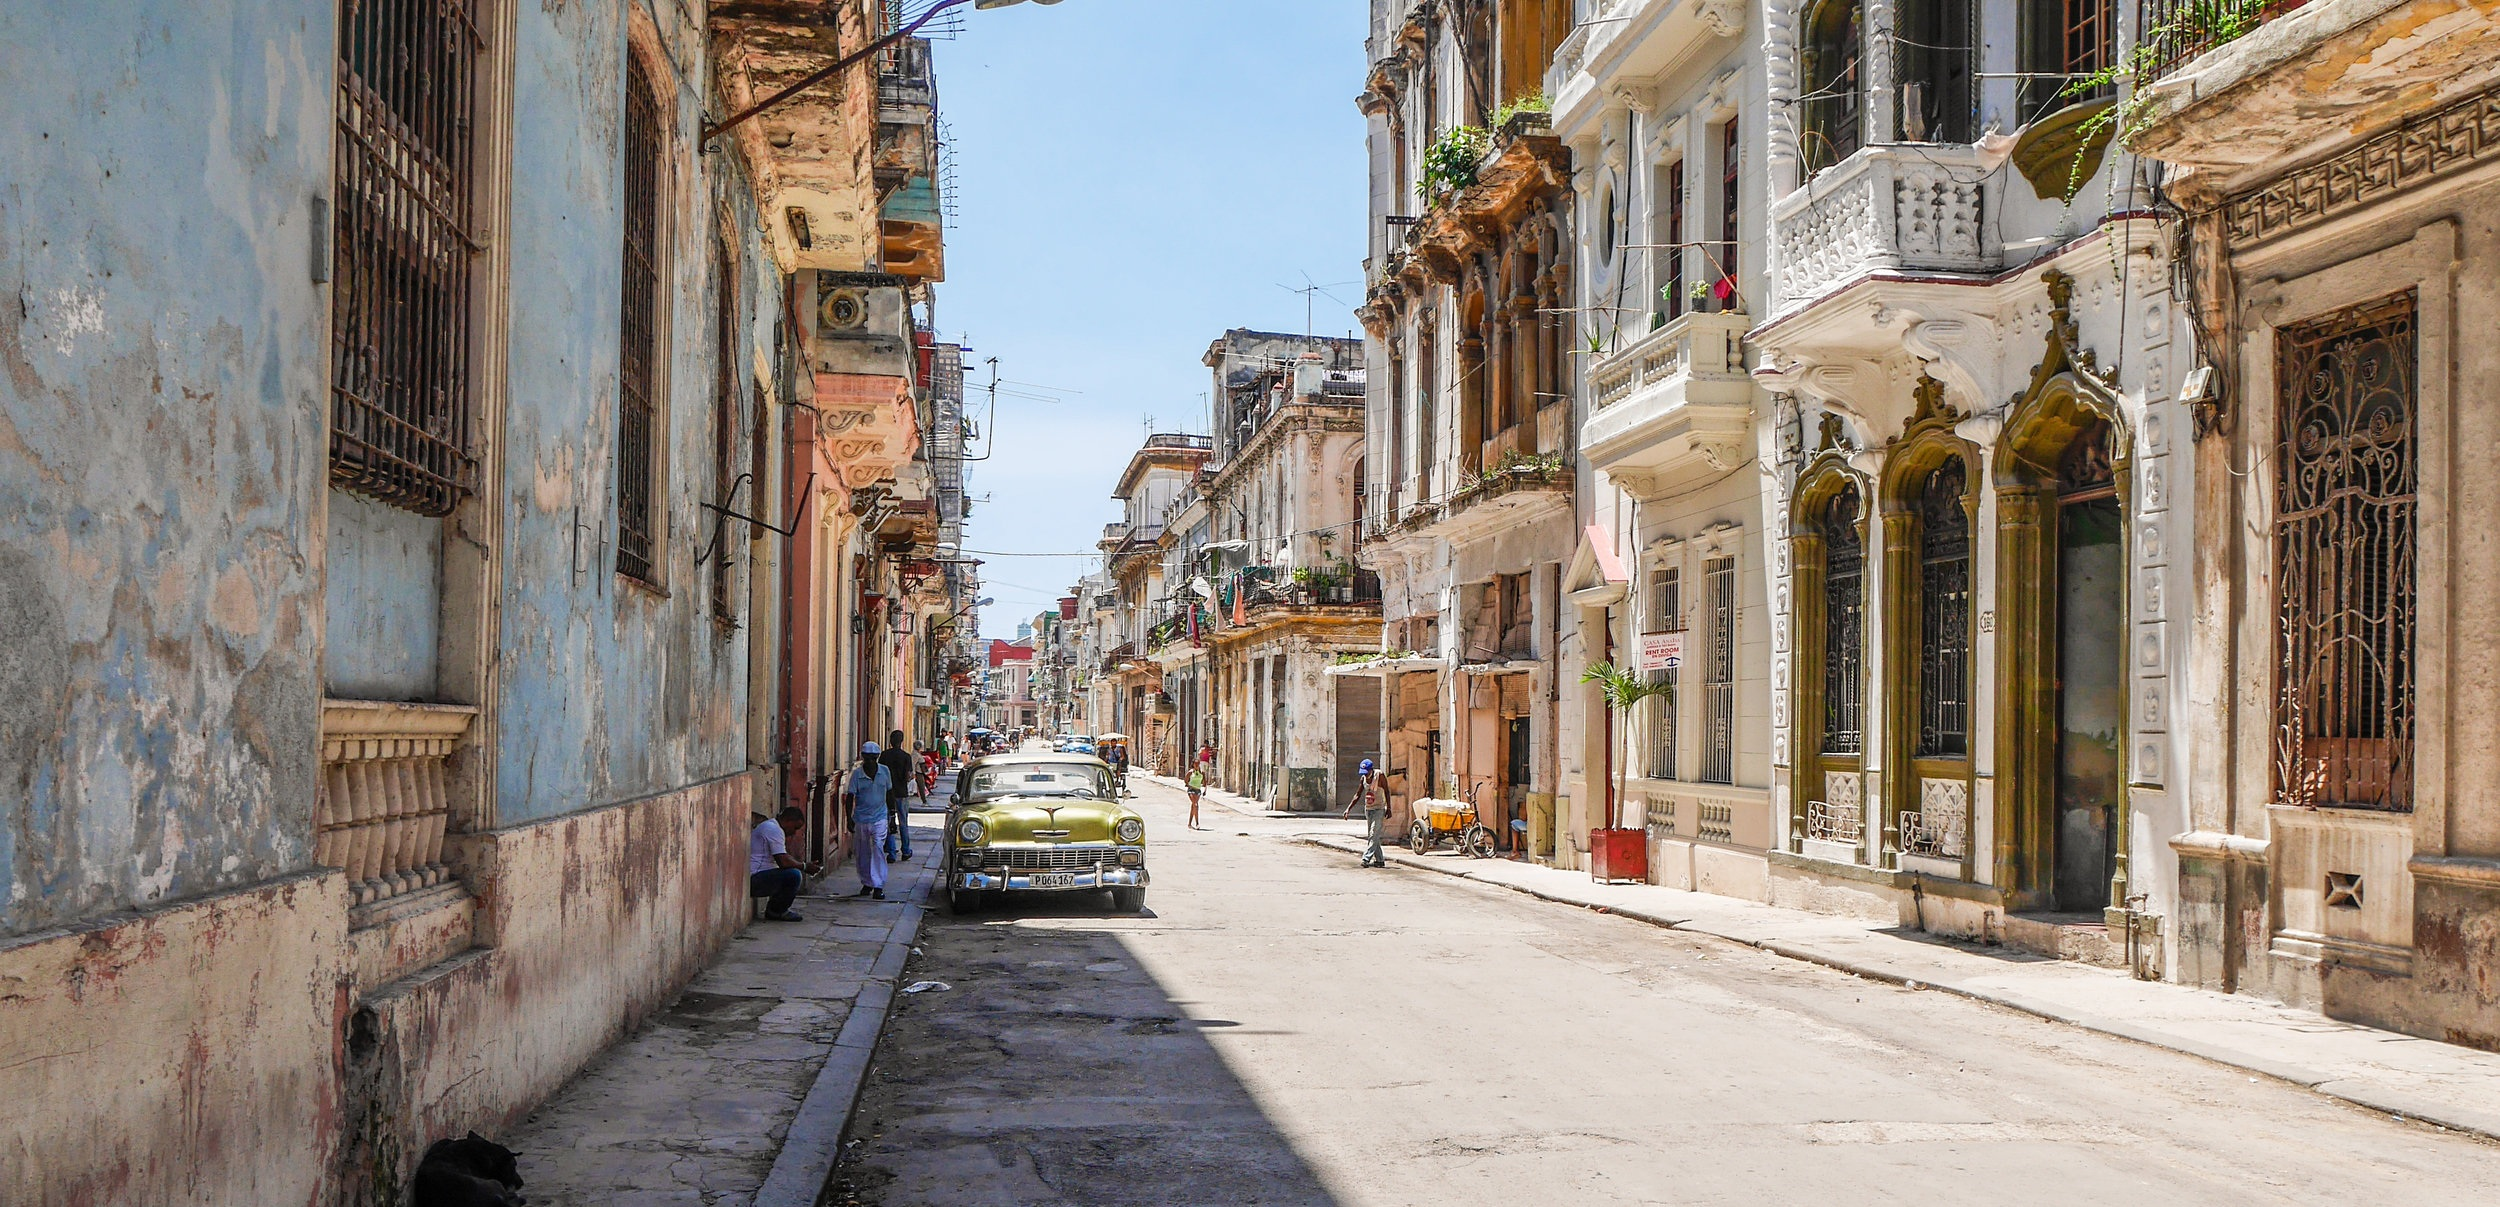 30 BESt things to do in cuba - author: suzanne rocco @ holistictravelers.com